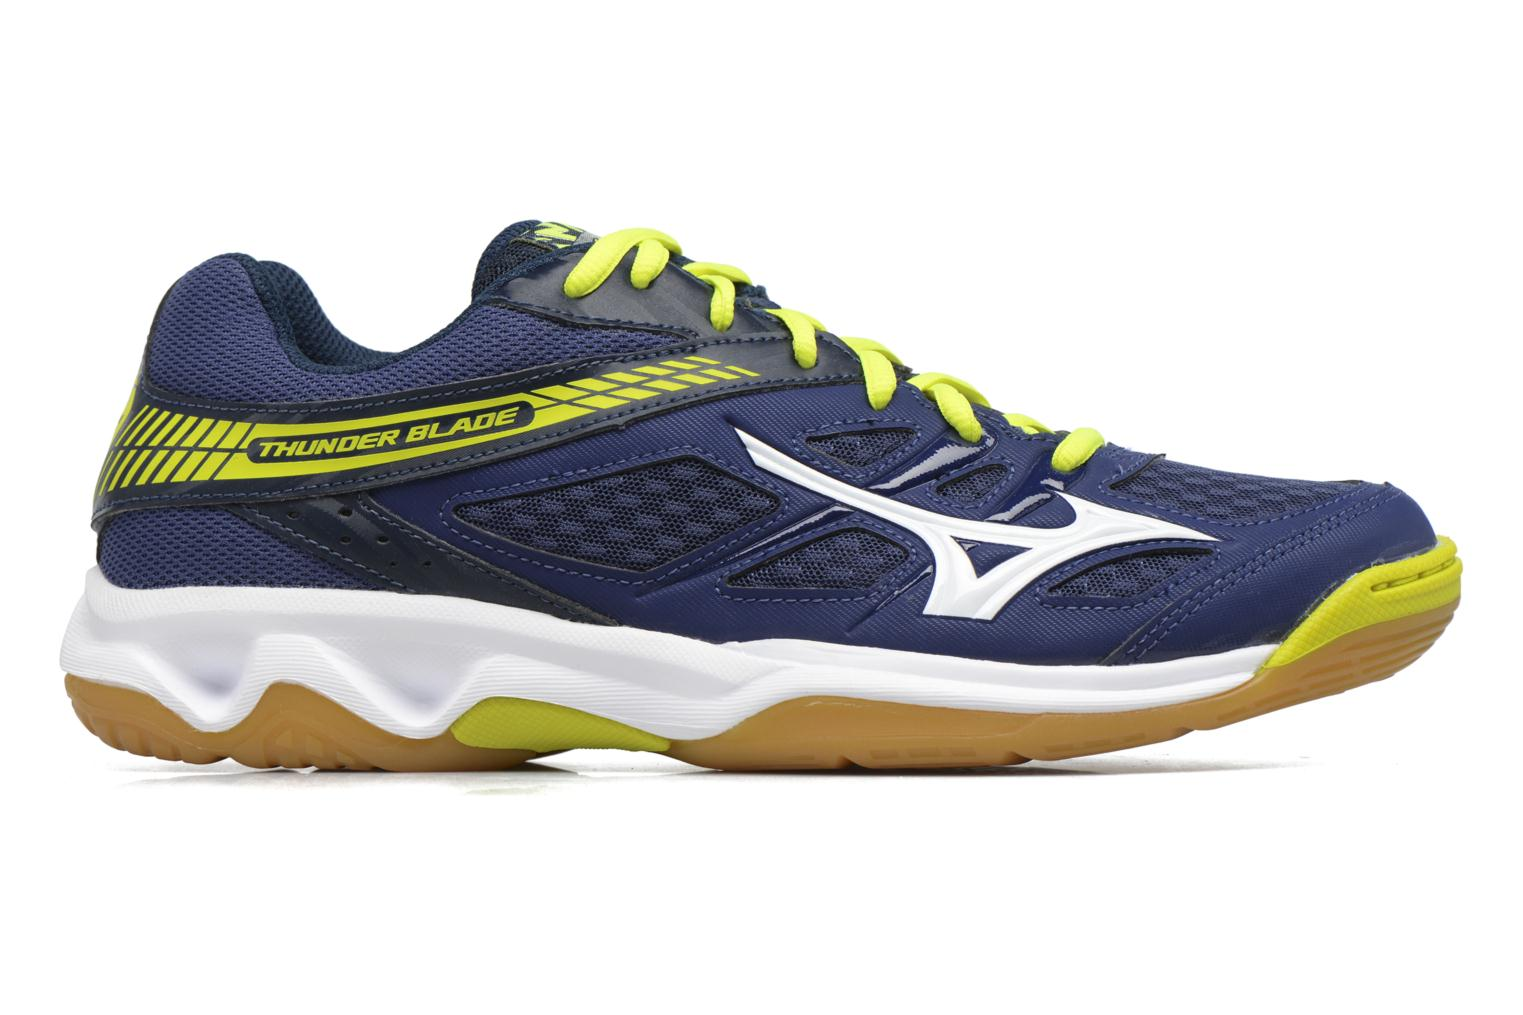 THUNDER BLADE Blue Depths / White / Safety Yellow